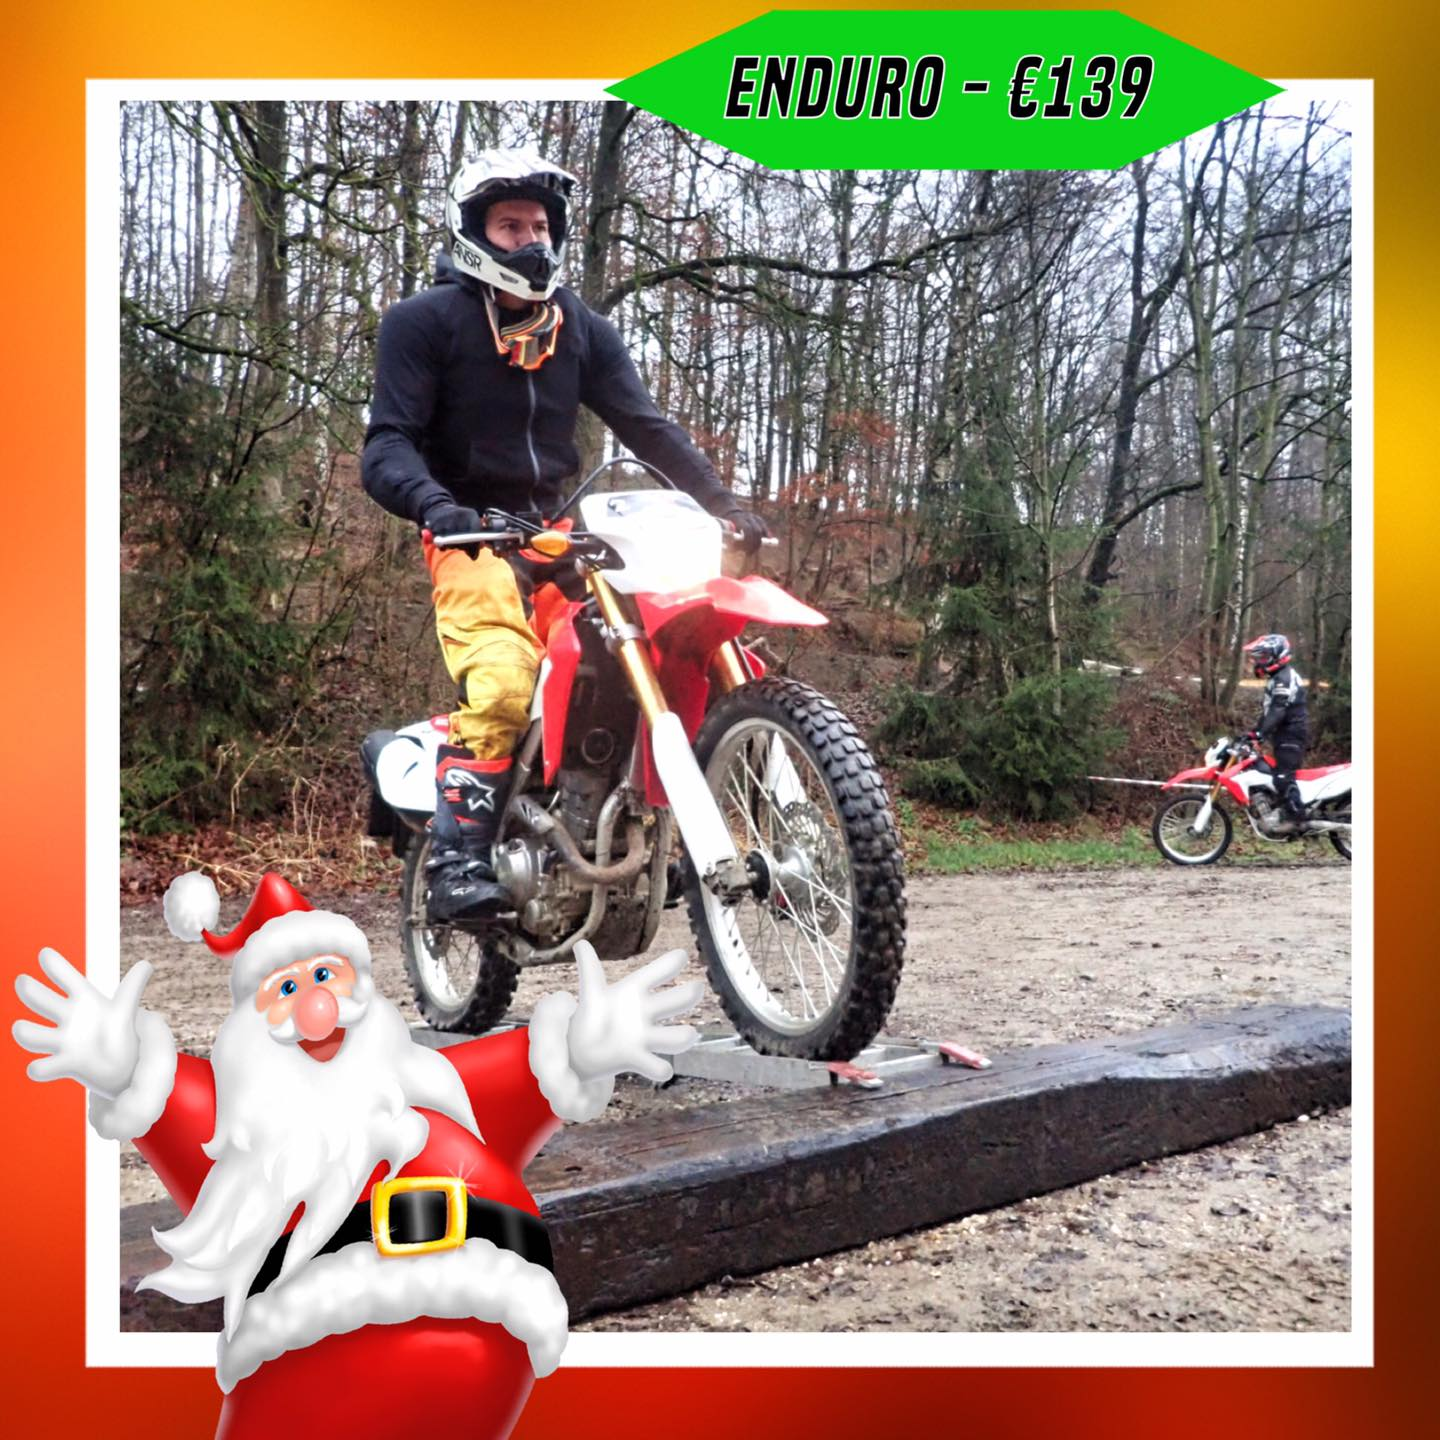 Kerst-initiaties Bilstain Endurofun 6